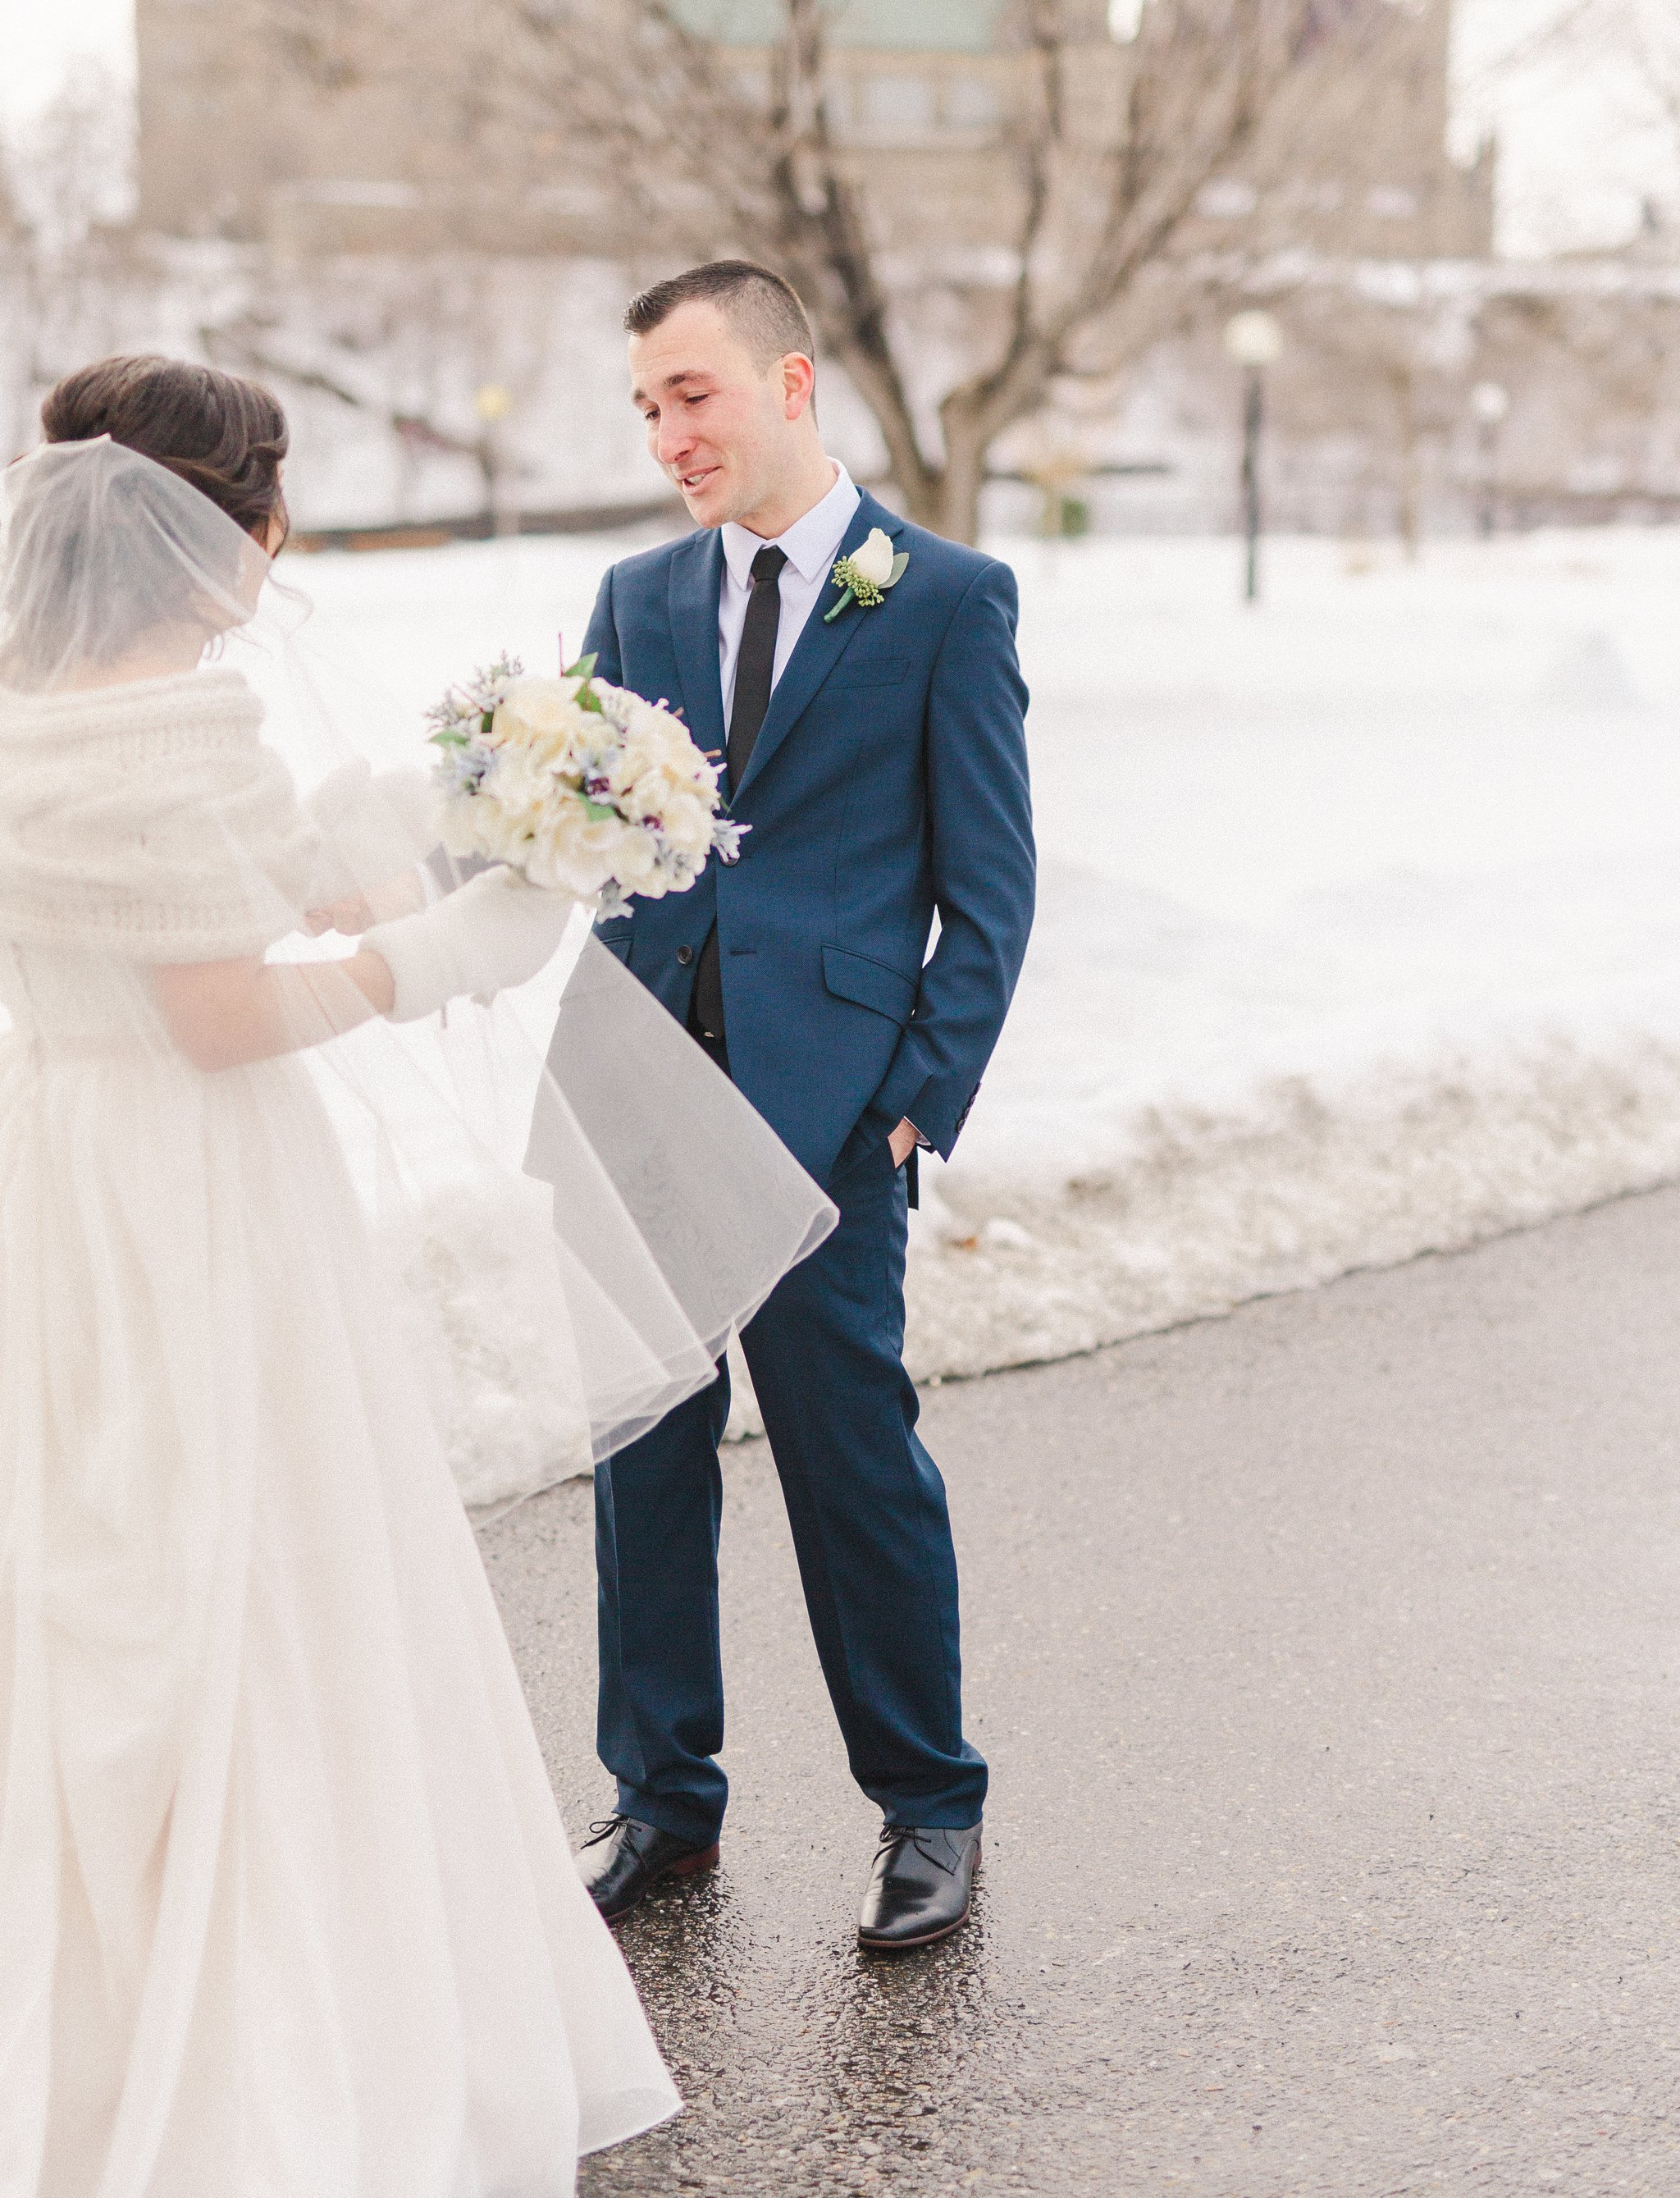 The first look outside the chateau laurier A Winter wedding at the Mill street Brew Pub wedding in Ottawa, Amy Pinder Photography